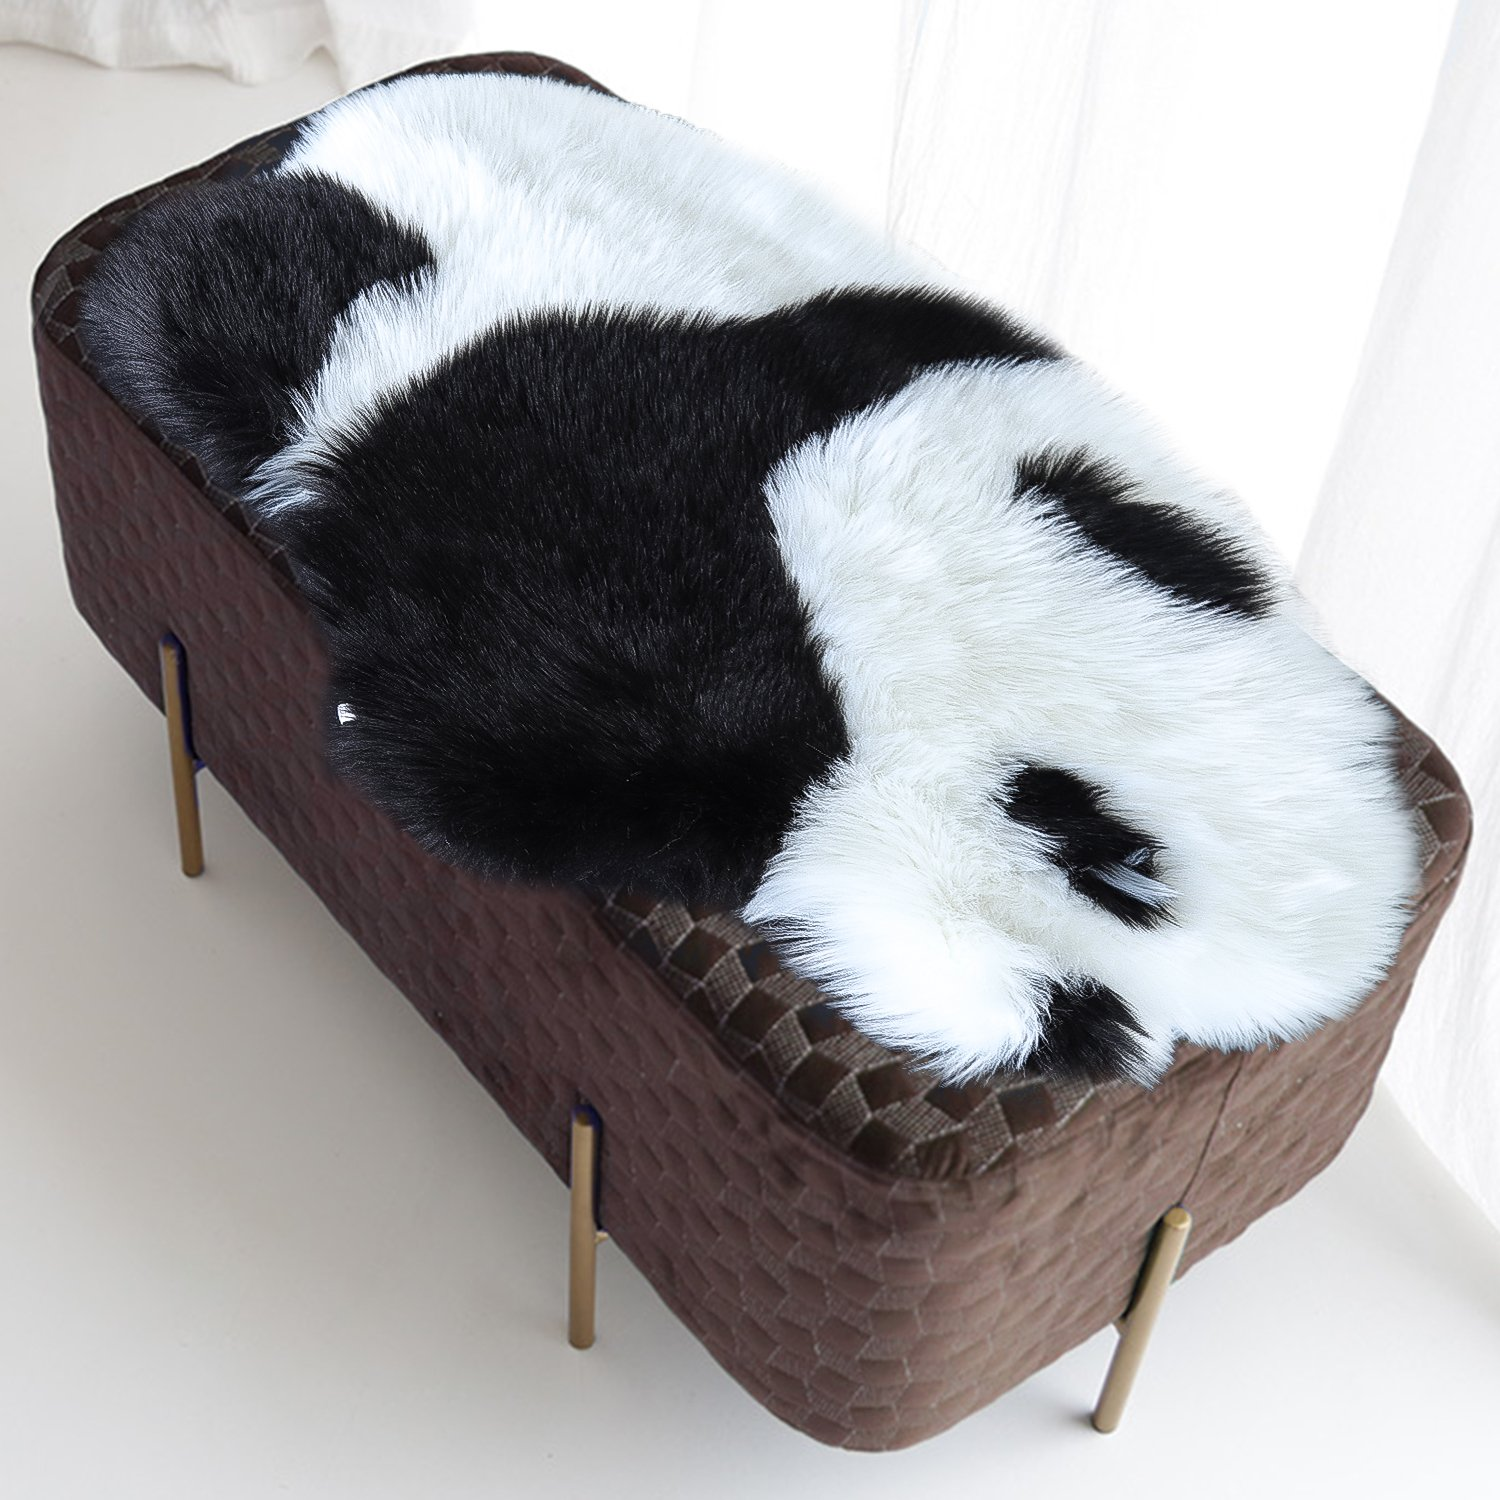 Noahas Faux Fur Sheepskin Silky Seat Cushion, Home Decor Long Wool Area Rugs Carpet, Soft Fluffy Plush Chair Seat Pads Universal Fit for Home Office Restaurant Chair (2x3 Feet, Style-4)